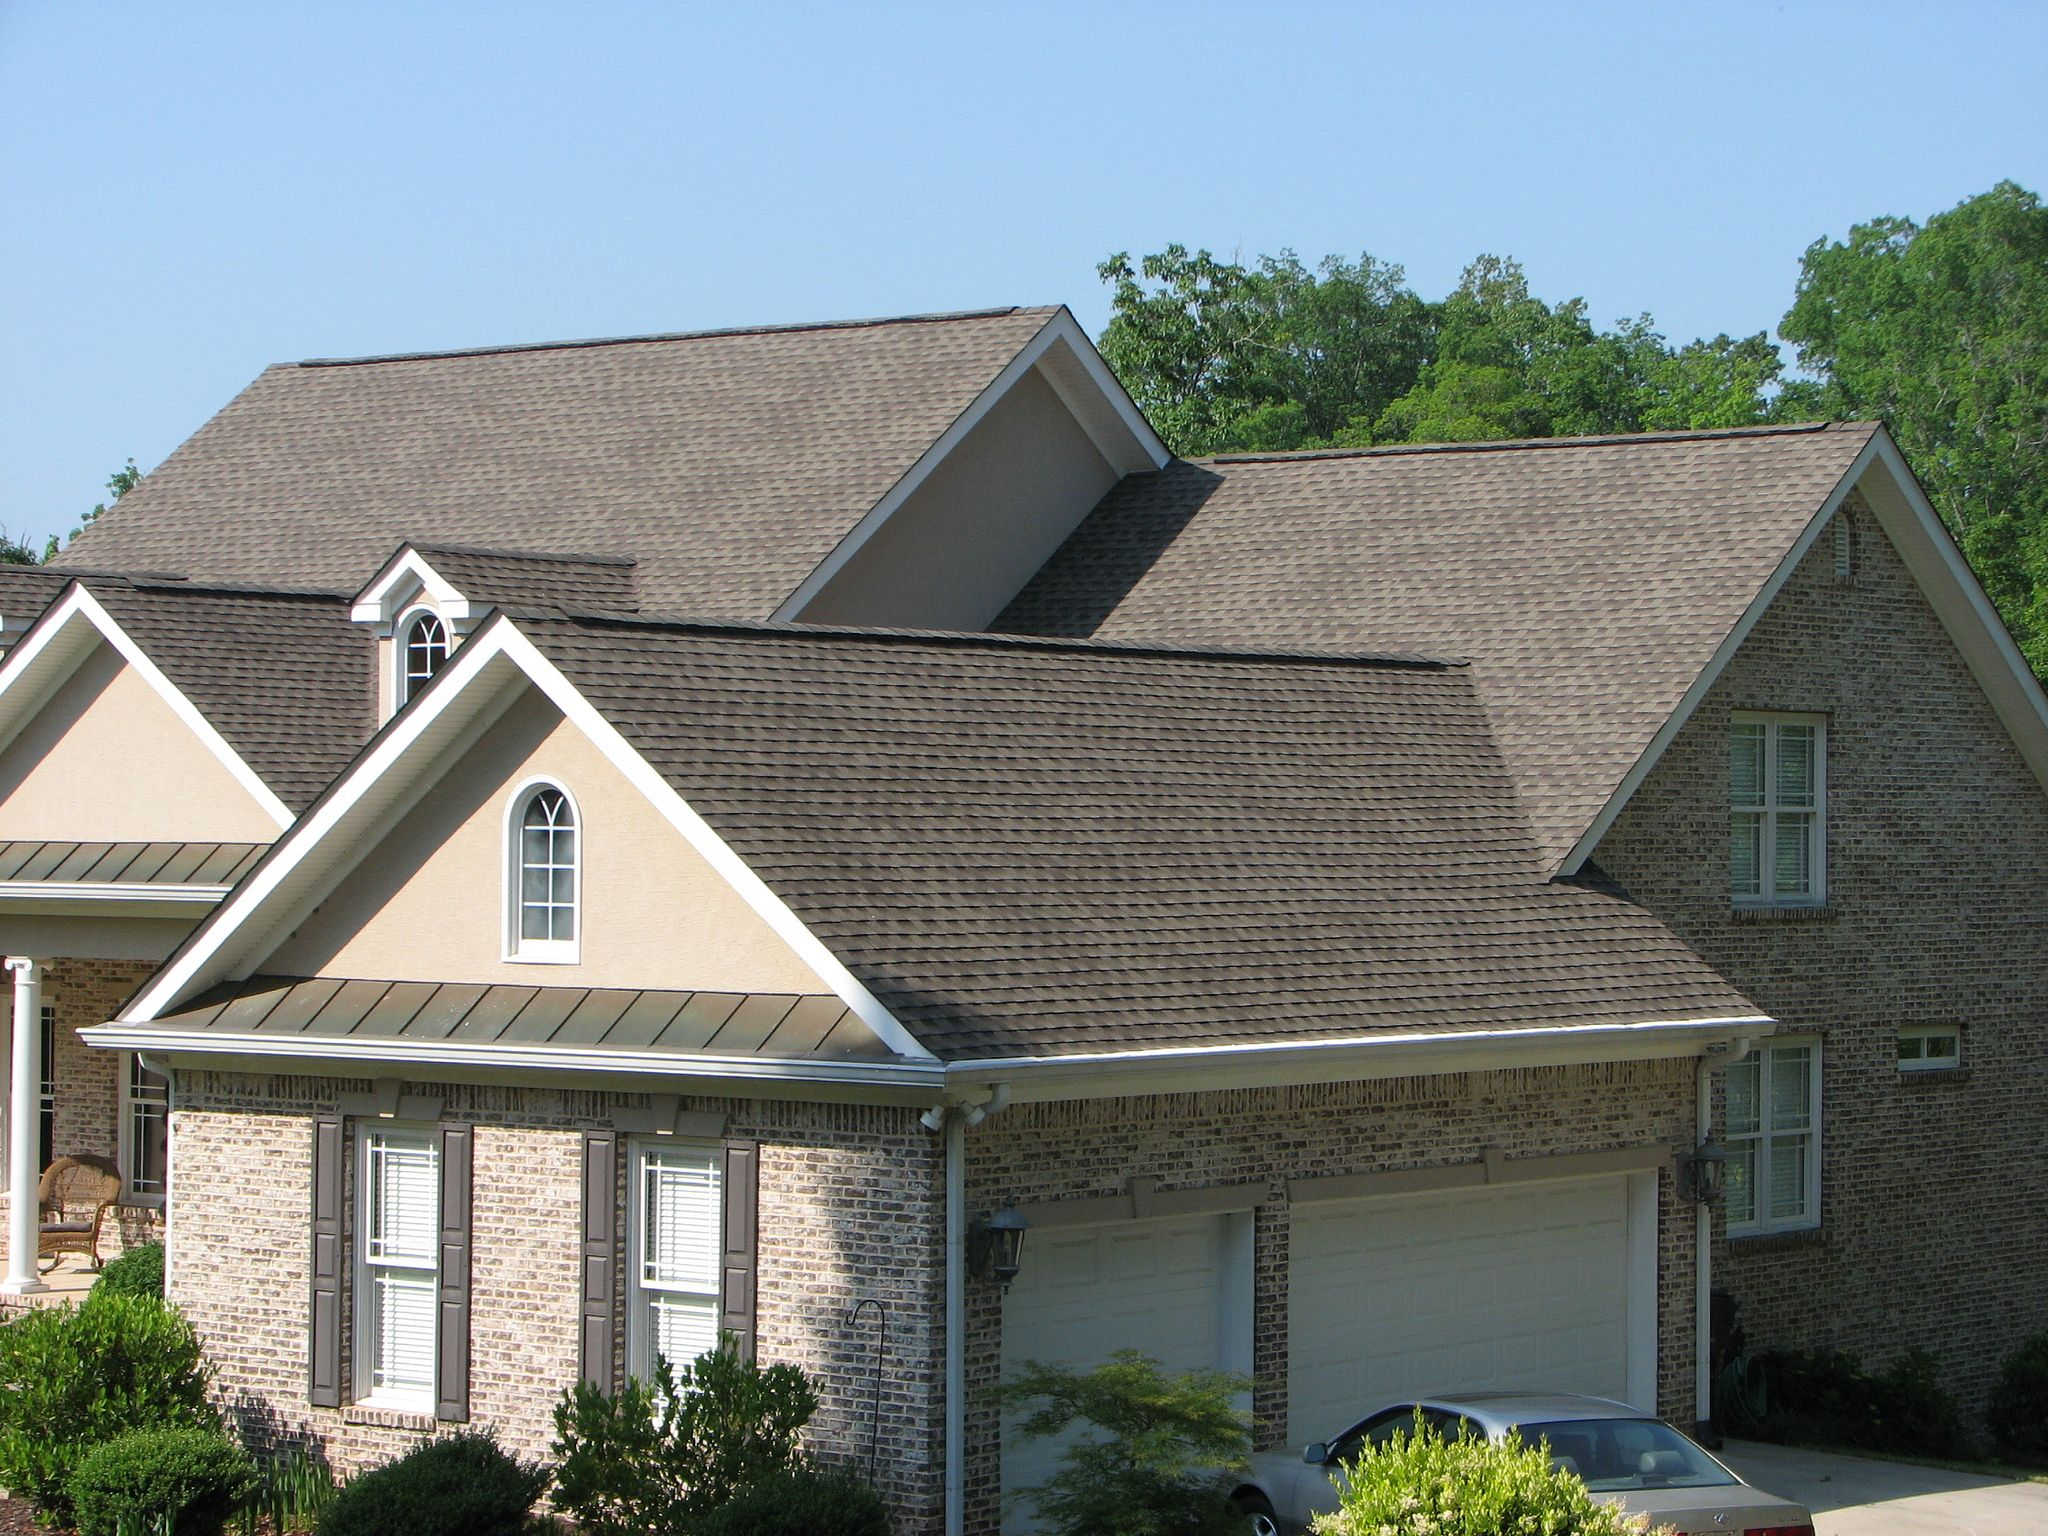 Best Gaf Timberline Hd In Weathered Wood 2561 Roof Exterior 640 x 480